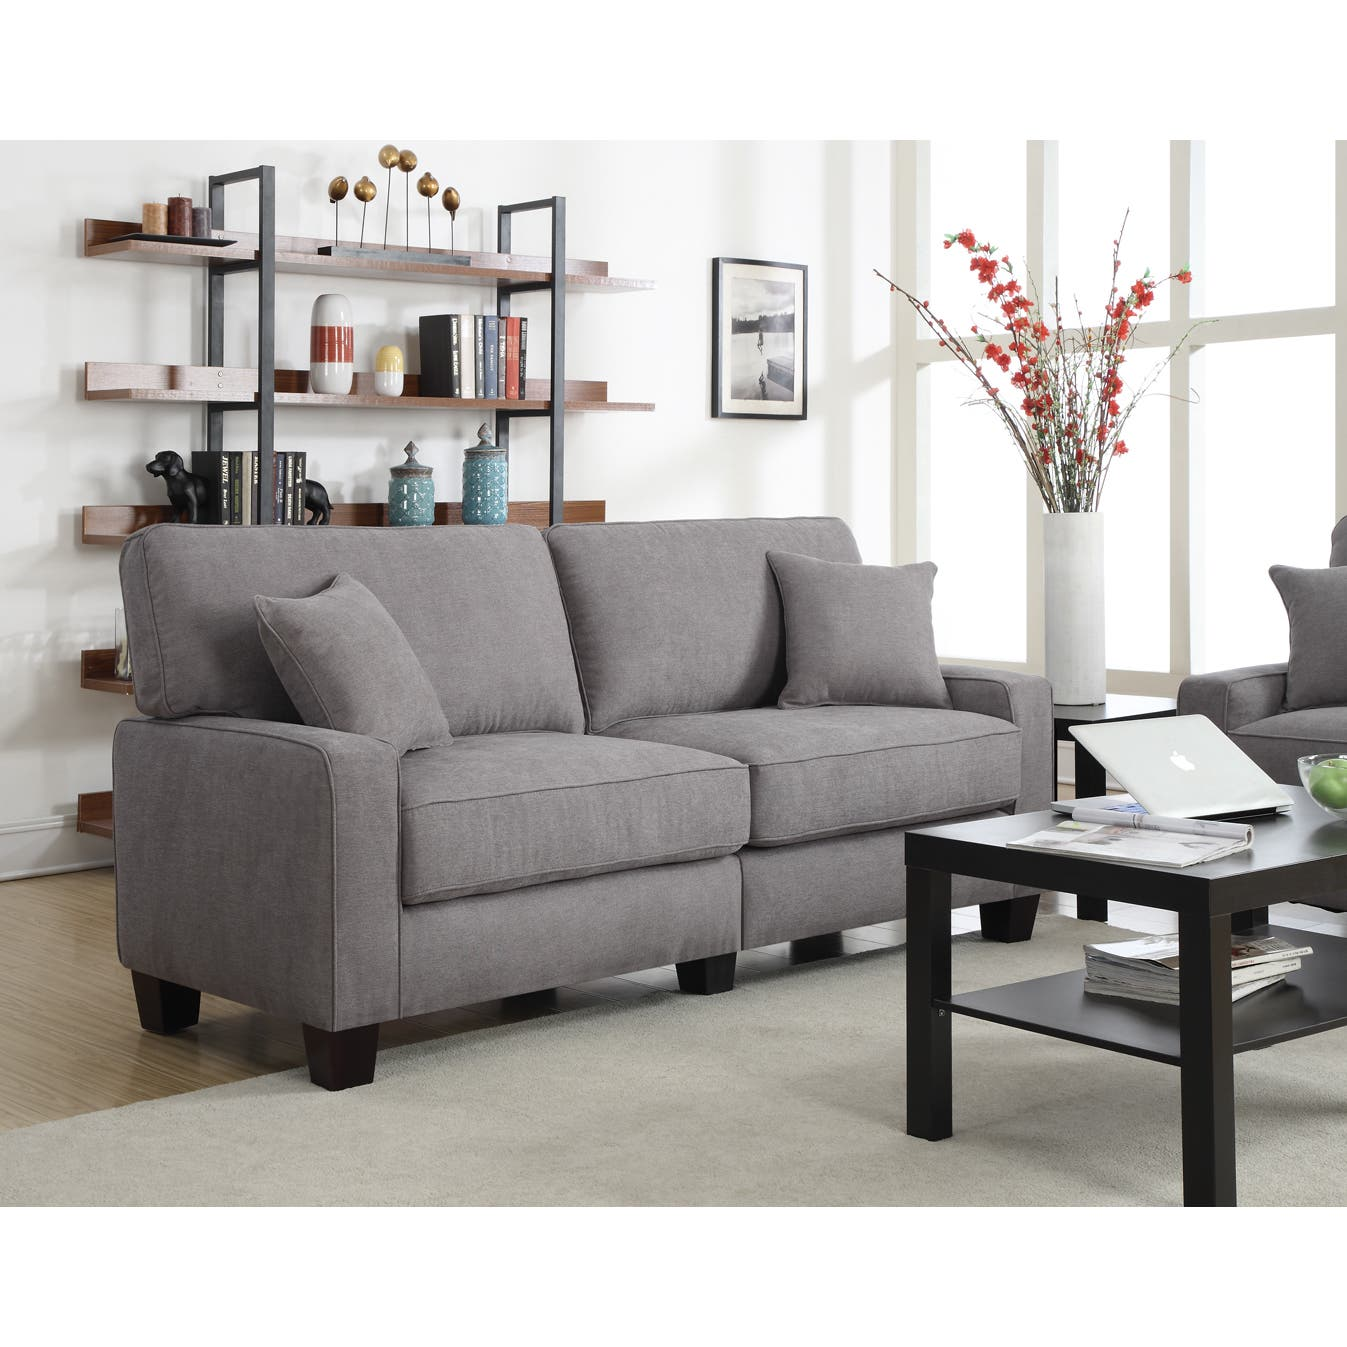 Sofa Deals Online: Buy Sofas & Couches Online At Overstock.com